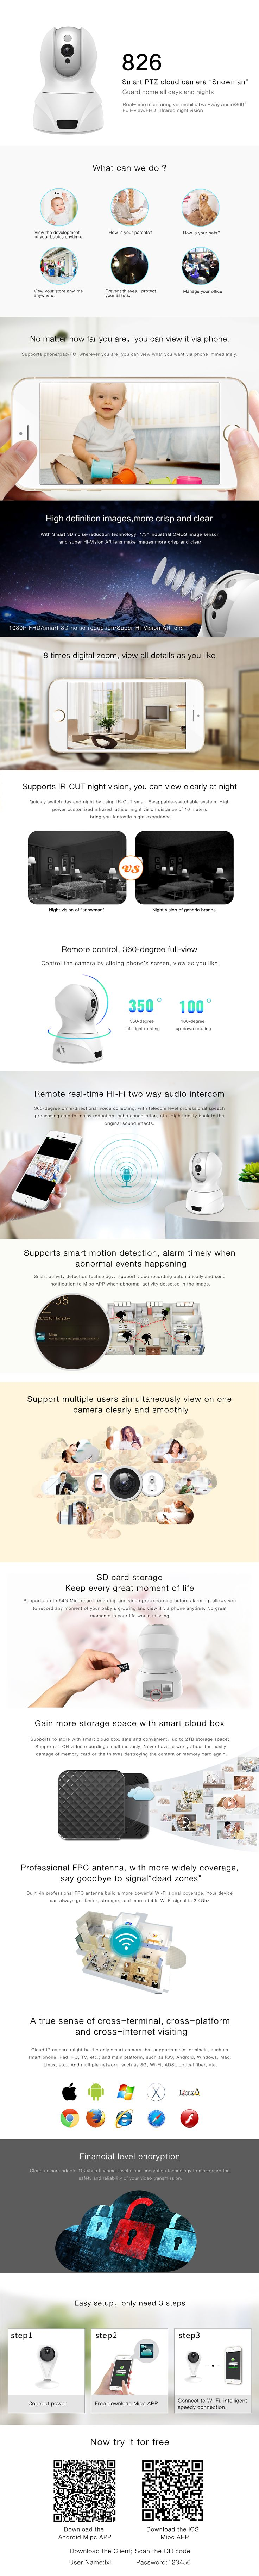 1080P IP camera snow man guard your home all day and night two way audio                                   Mobile/what's app/ WeChat:+86 135 3752 5894